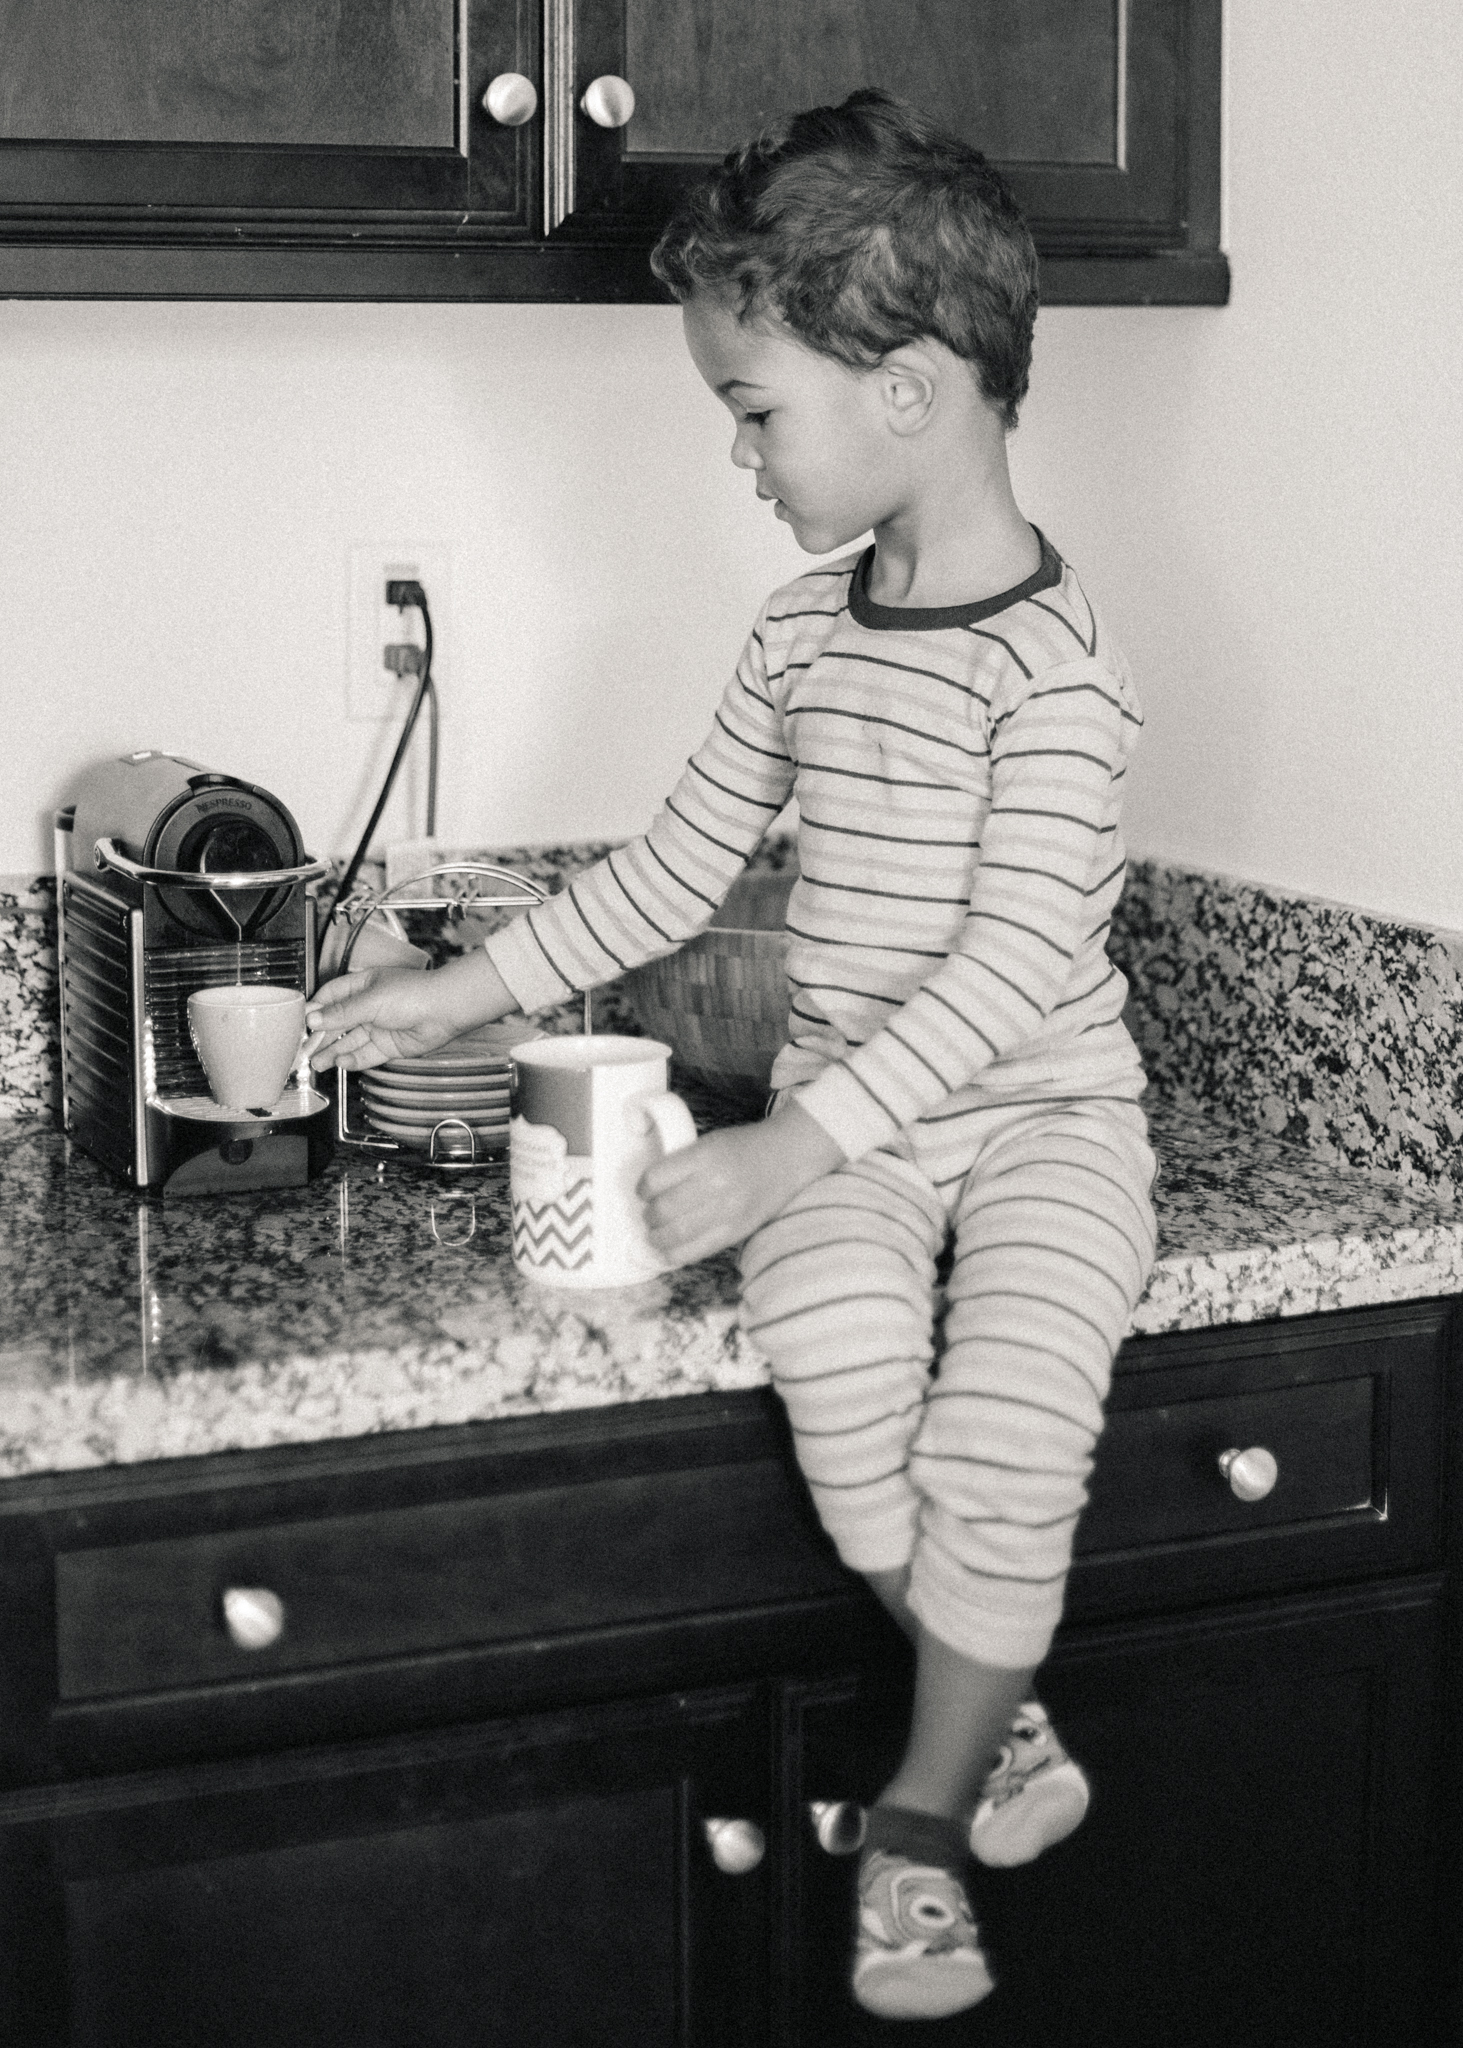 Carson making coffee for Mom